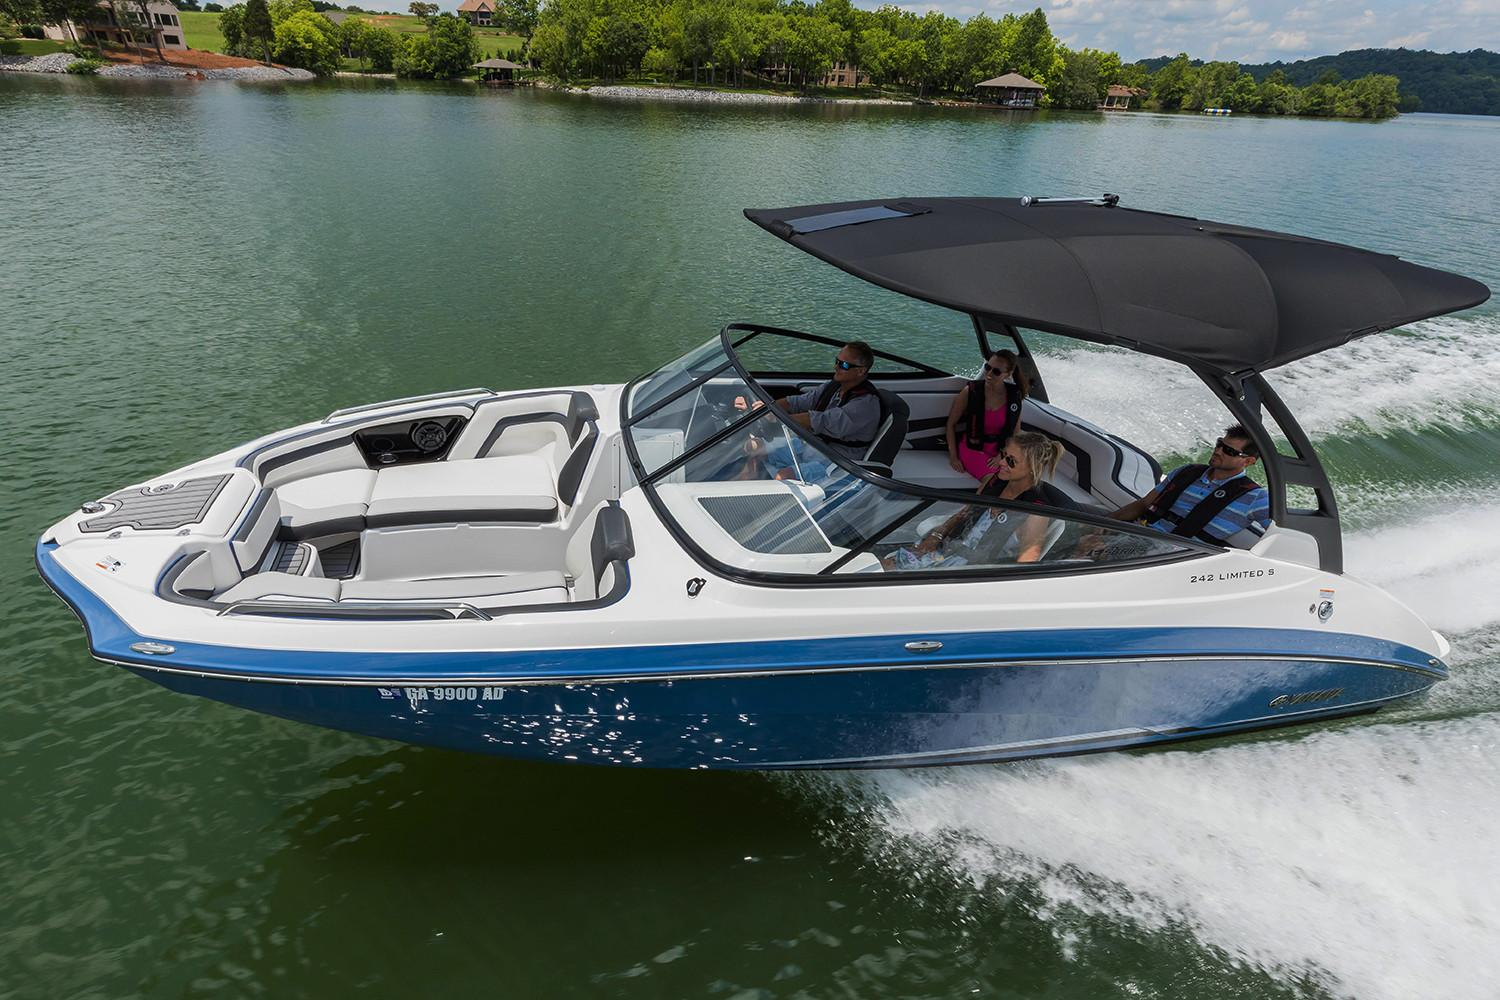 2018 Yamaha 242 Limited S E-Series in Hampton Bays, New York